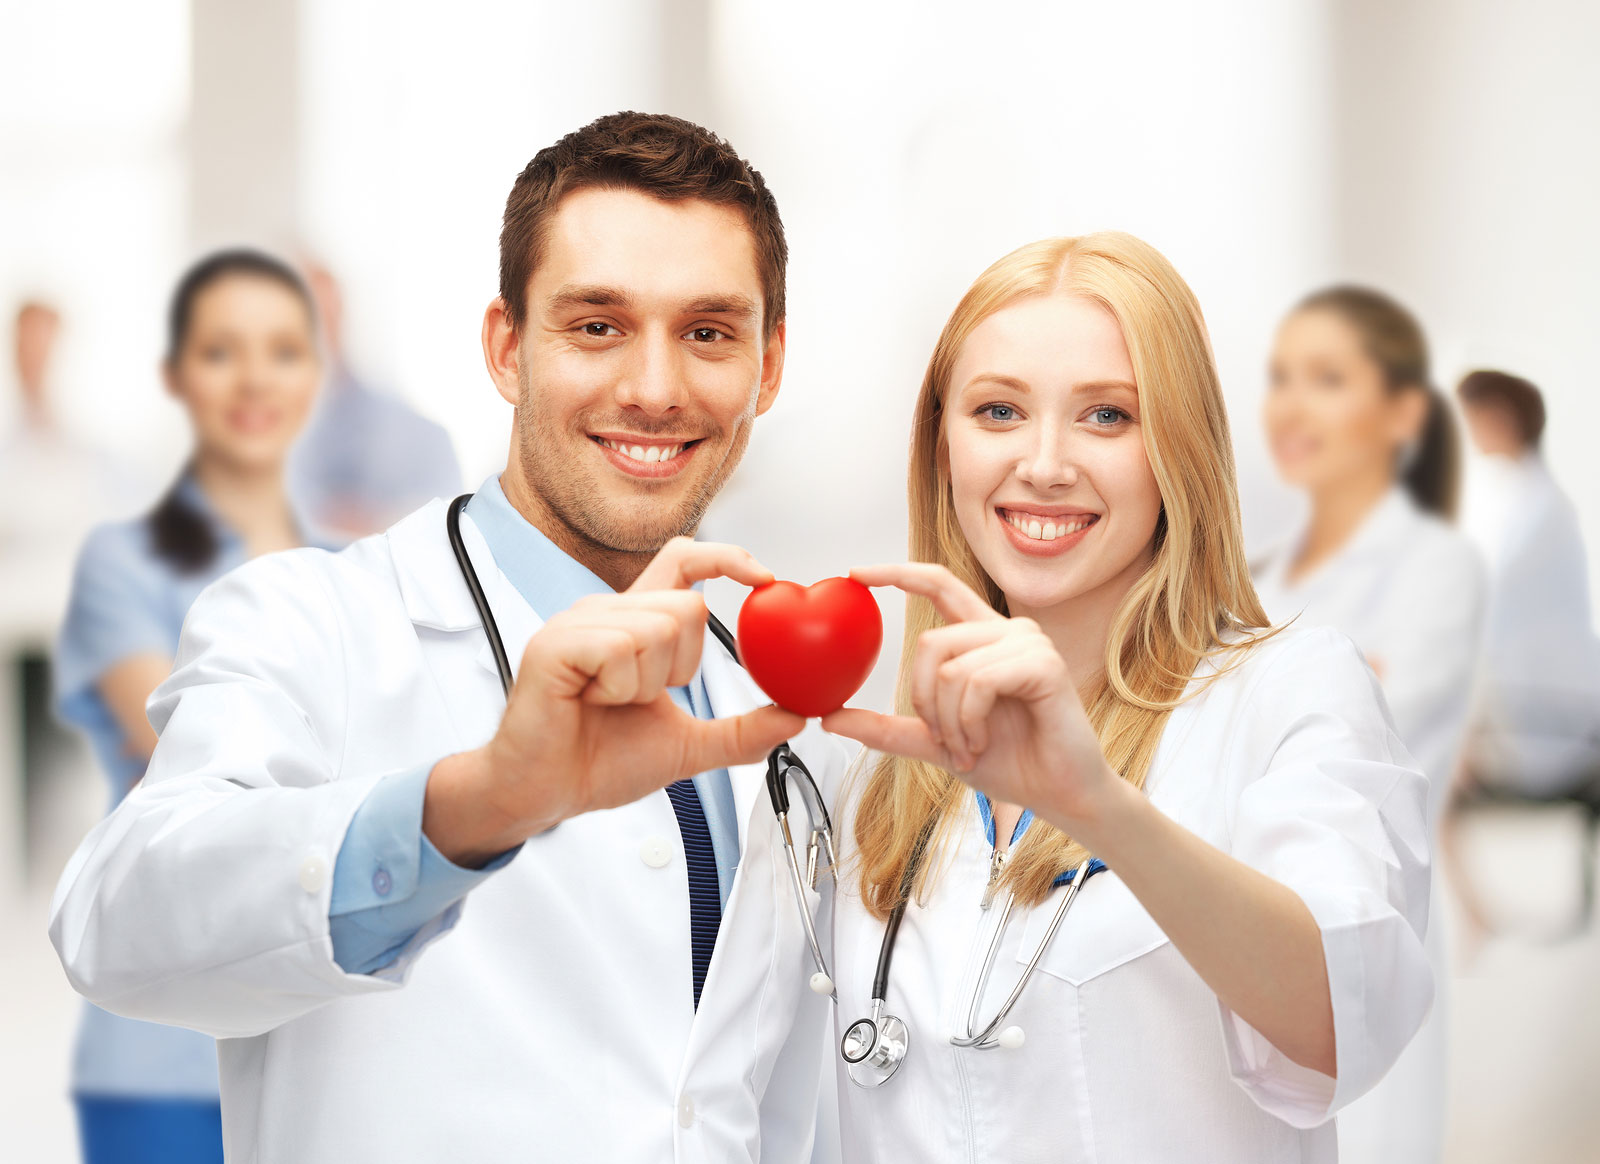 About Wellcare Medical Centre Kingston